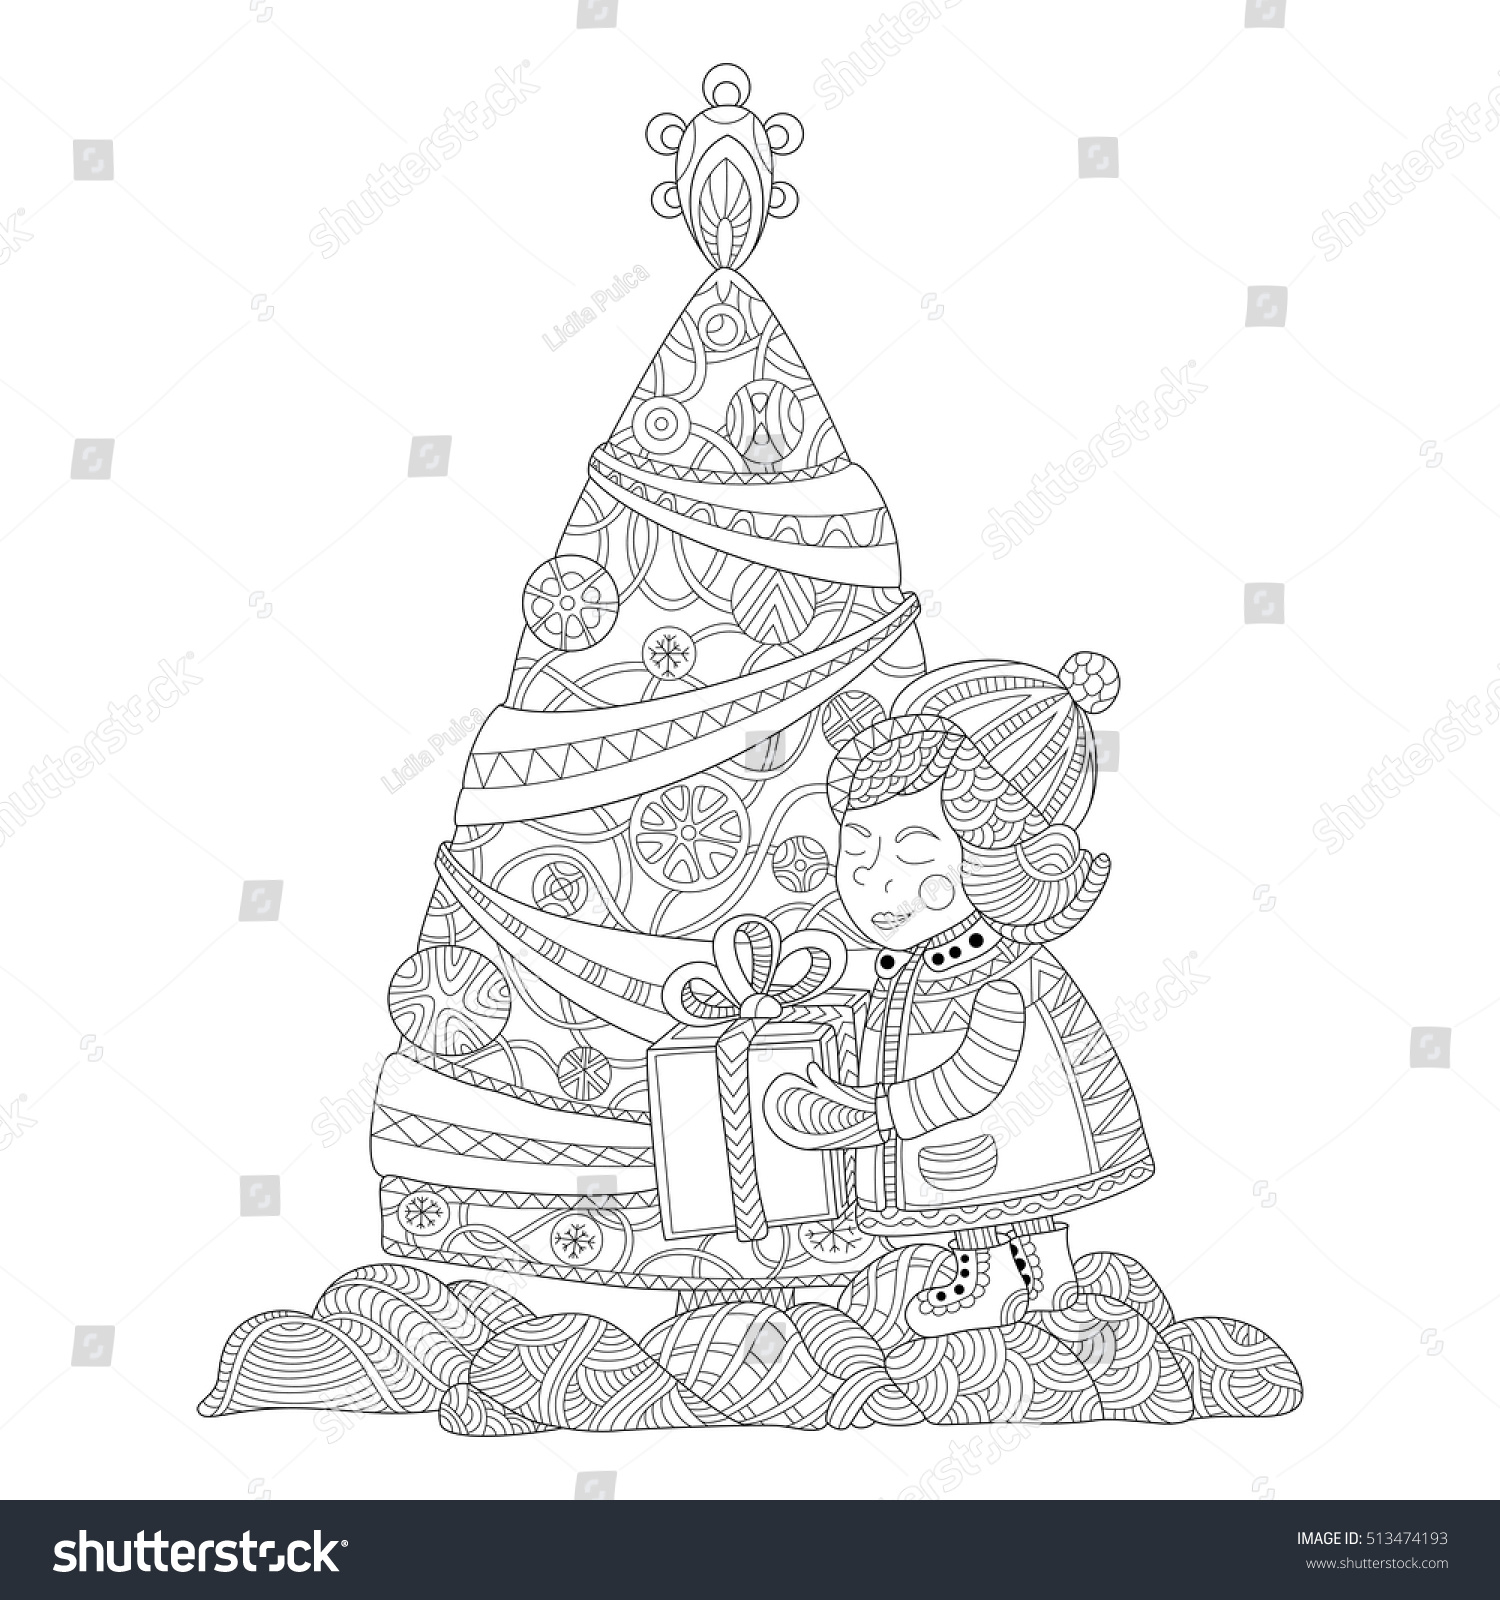 unwrapping christmas gifts coloring page stock vector